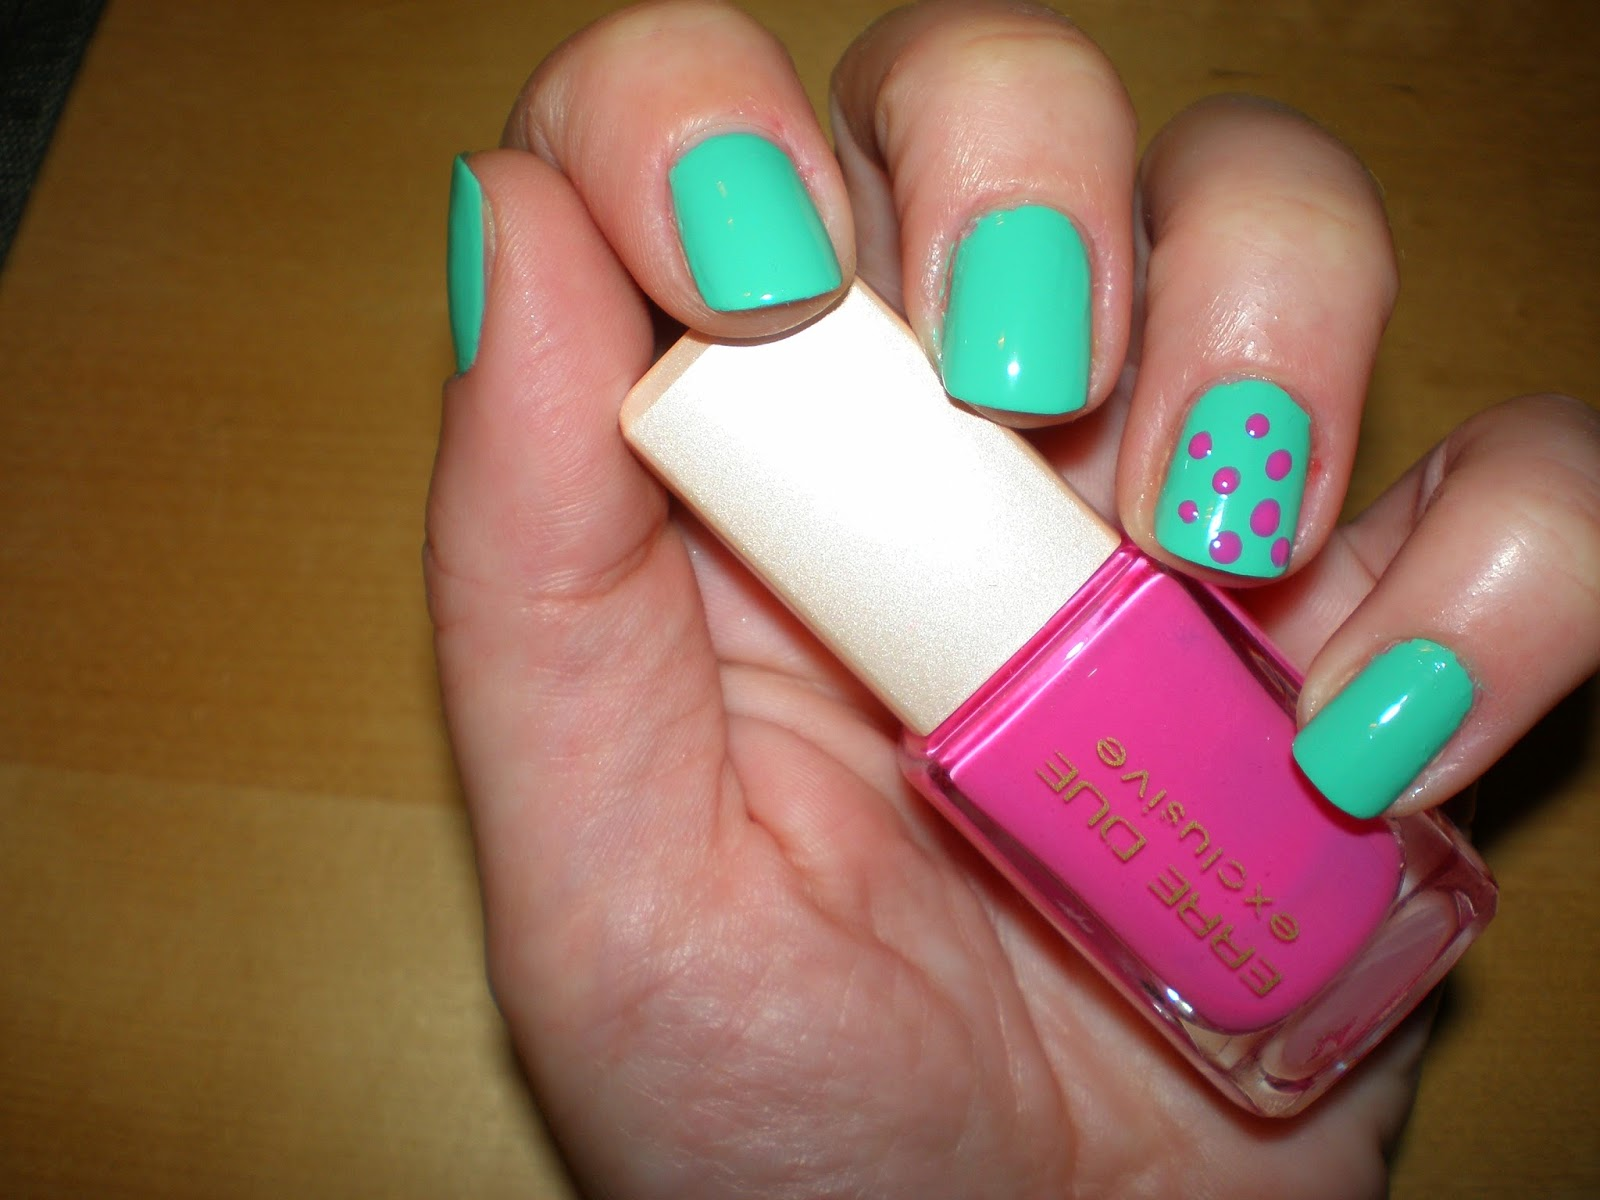 Manicure using Jessica Dynamite Teal and polka dots made using Erre Due #117